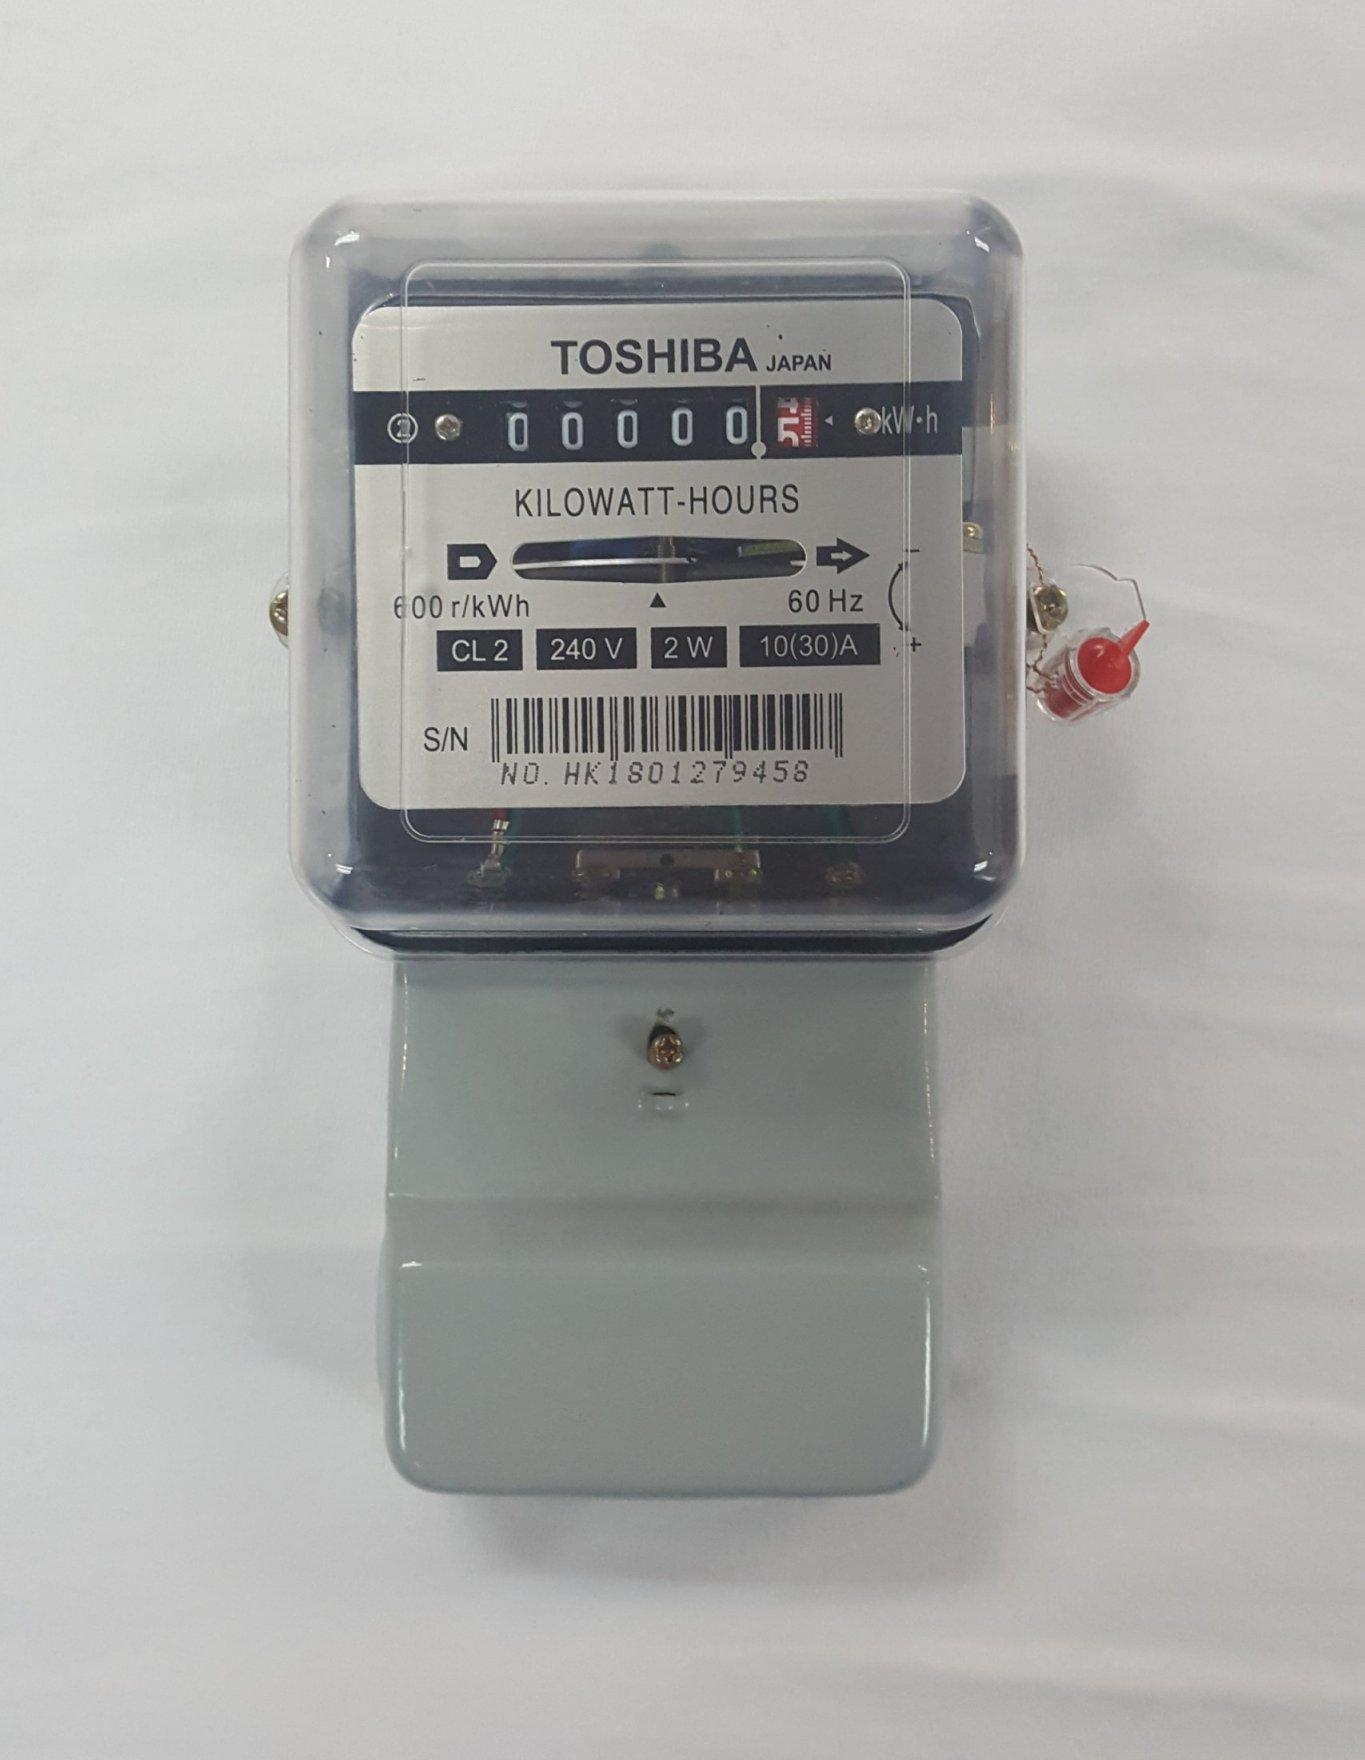 Electrical Equipment For Sale Electricals Prices Brands Review Japanese Car Fuse Box Toshiba Electric Meter